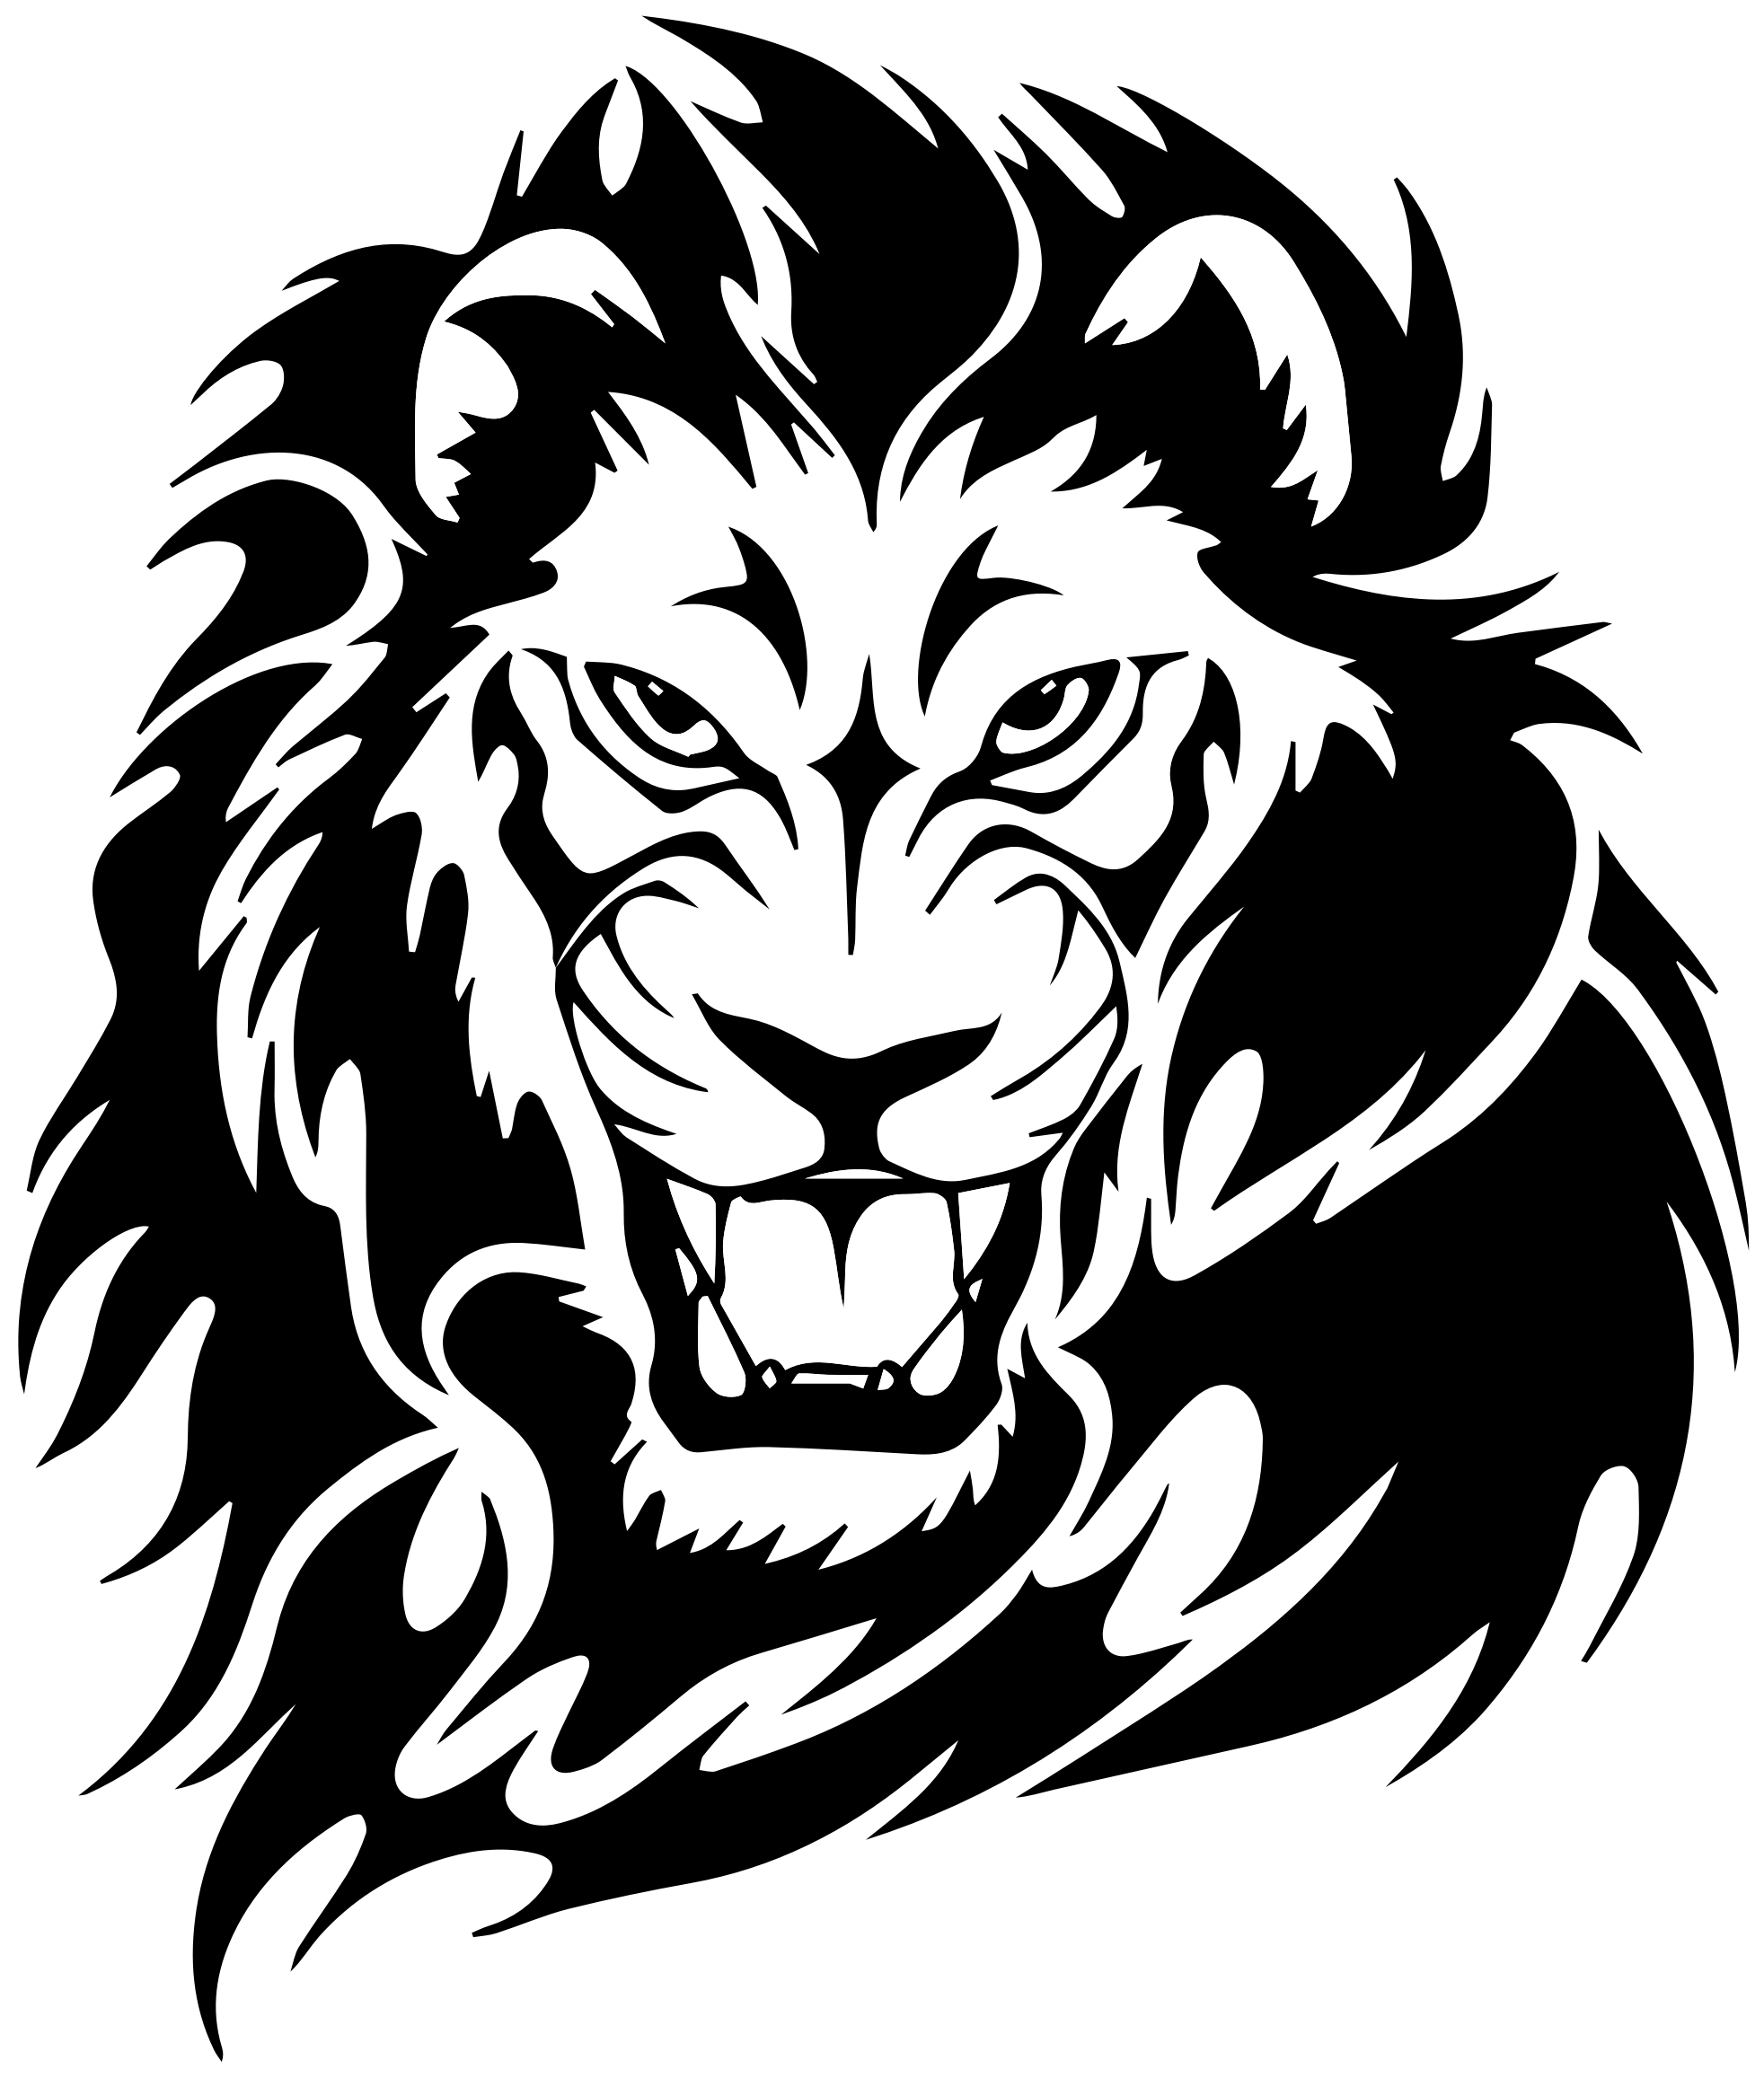 Car sticker design png - Tribal Lion